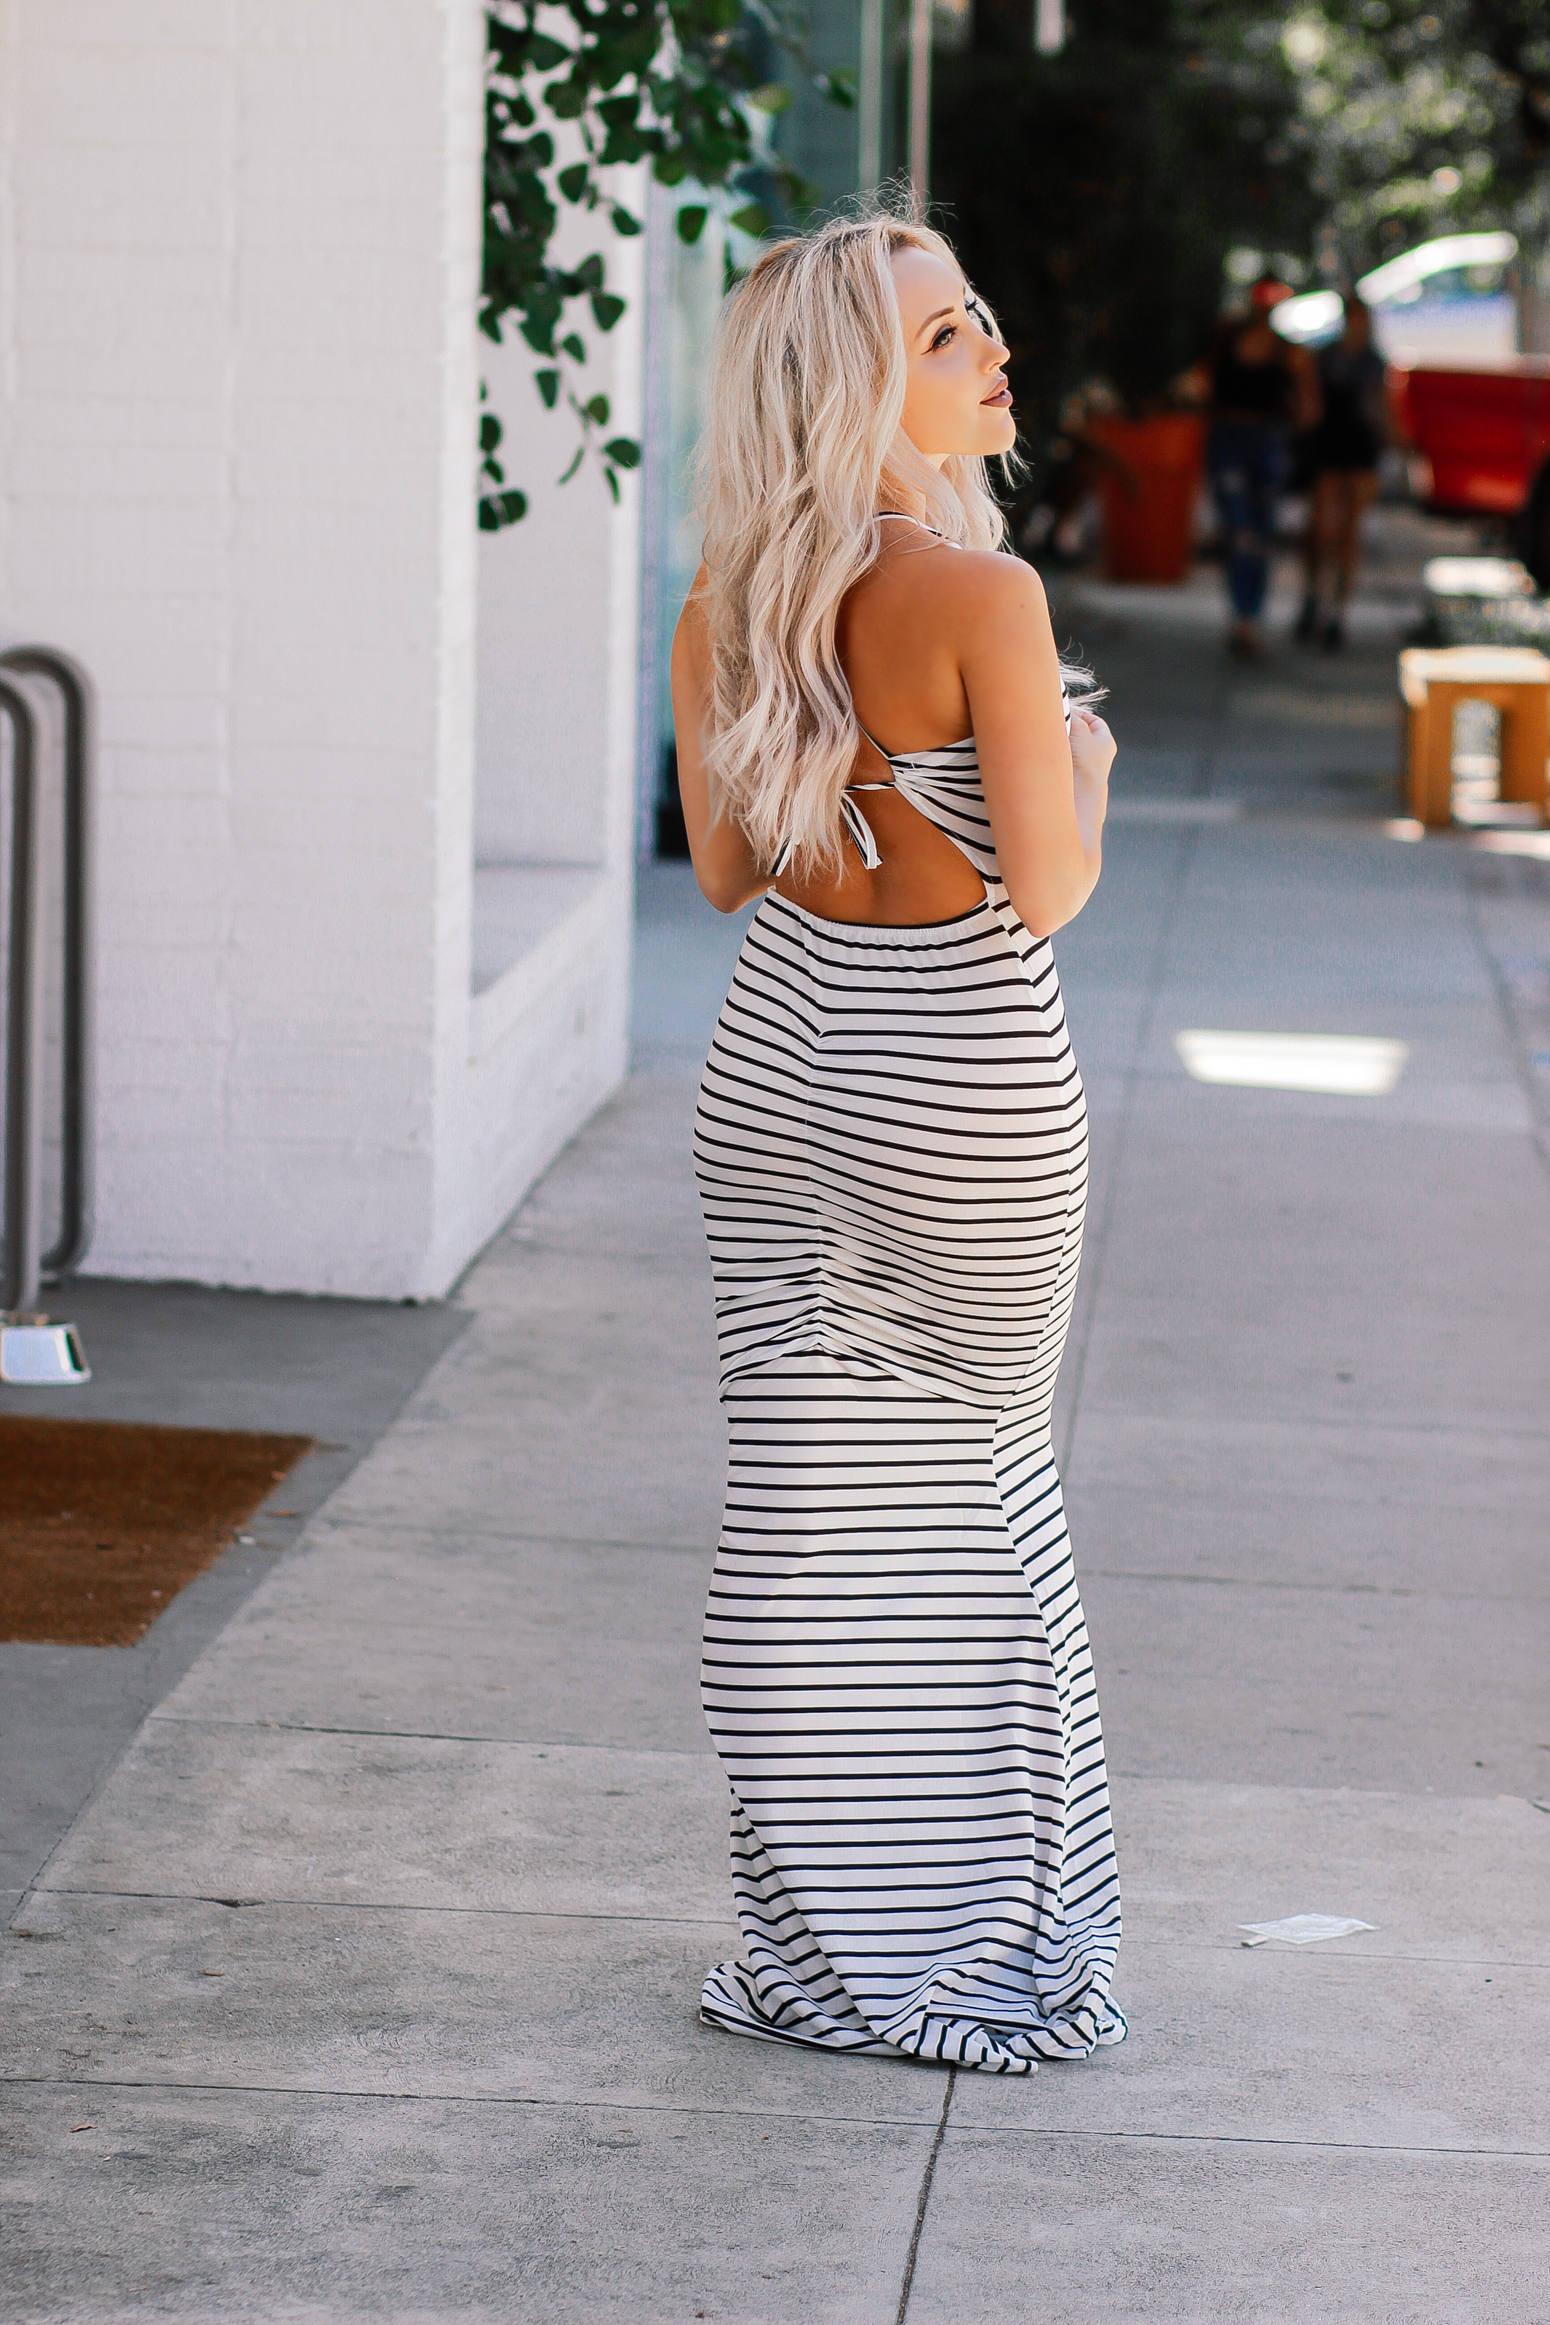 Blondie in the City | Striped Backless Maxi Dress | Long Blonde Hair